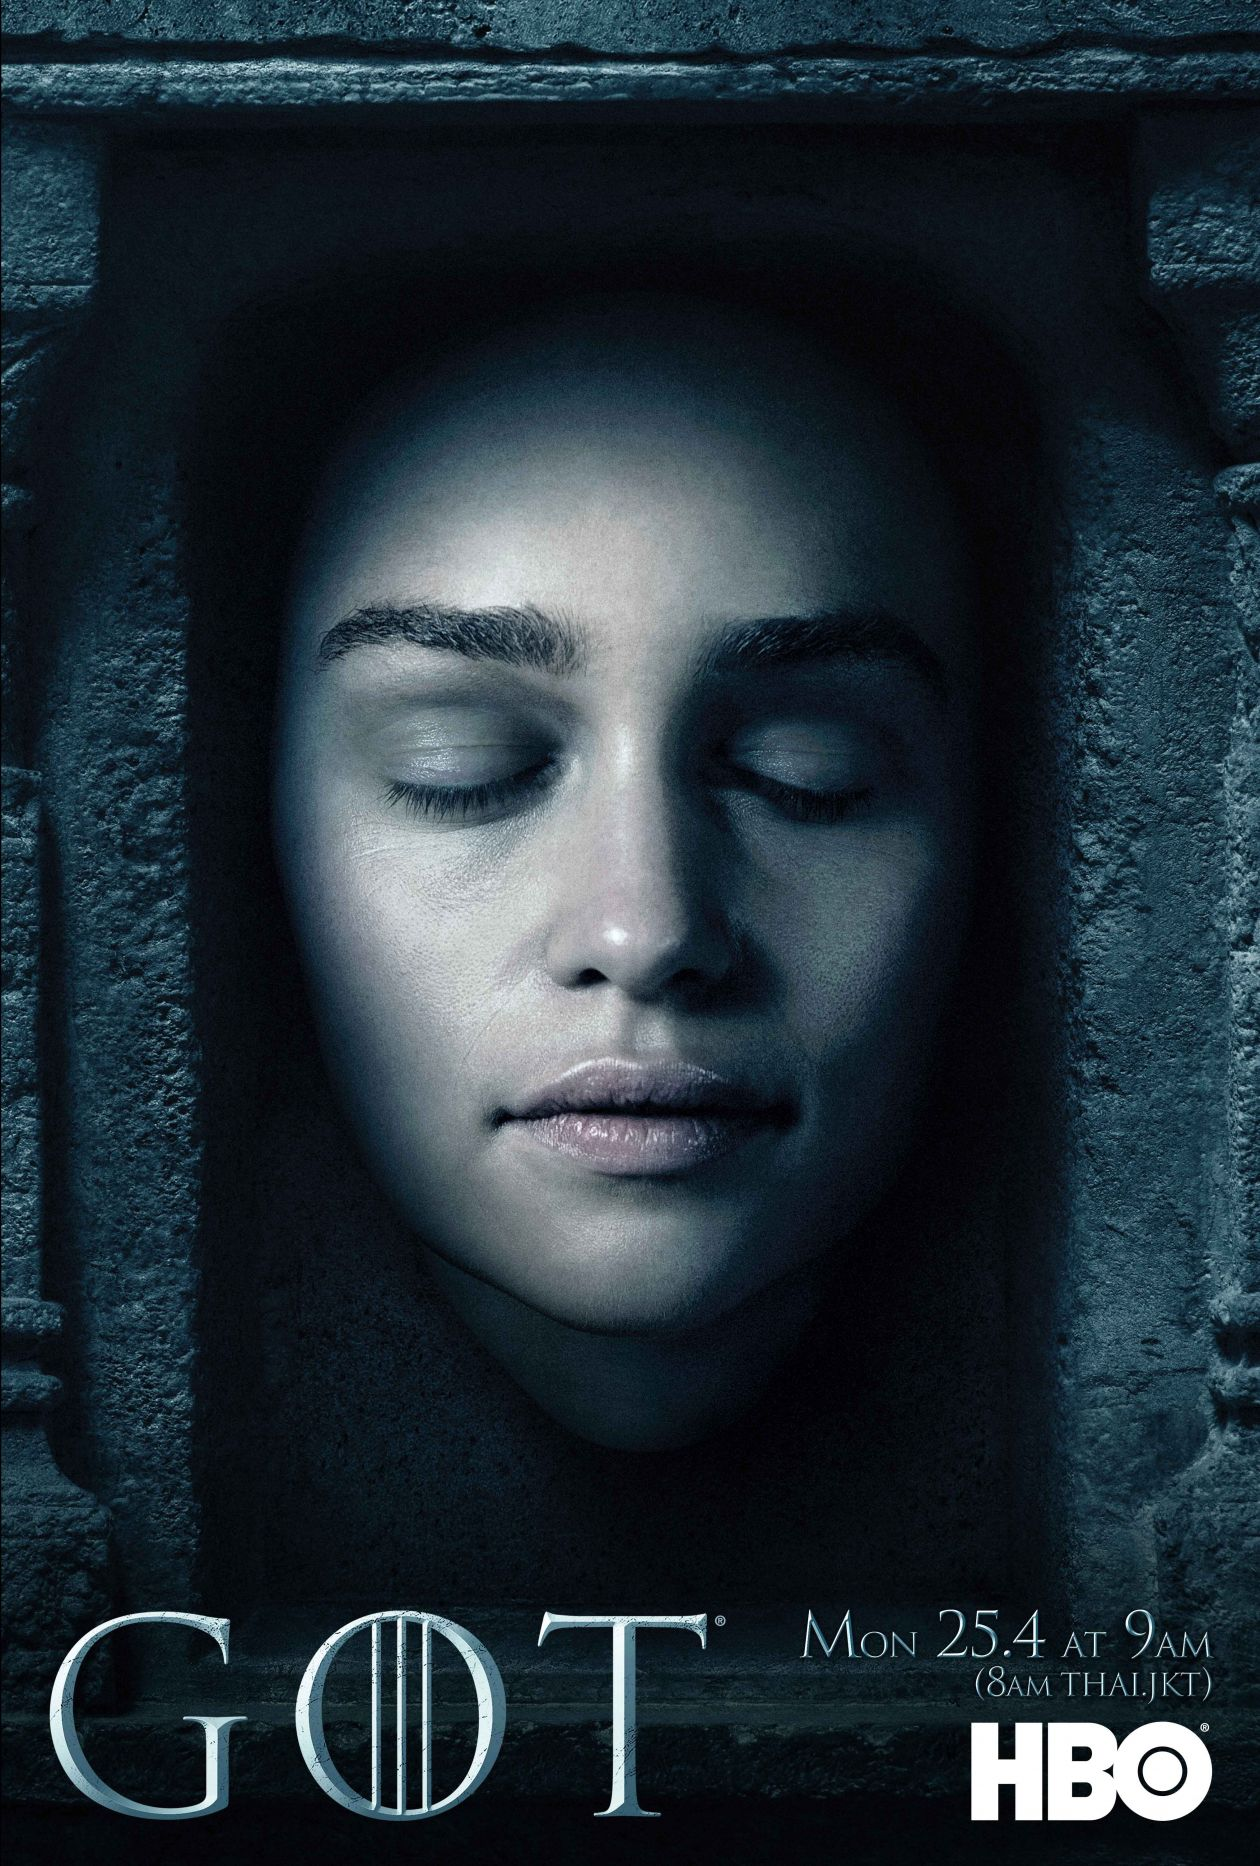 Emilia Clarke actress | Queen Daenerys Targaryen / Game of Thrones / Movie Series Season 6 Poster Affiche série Saison 6 2016